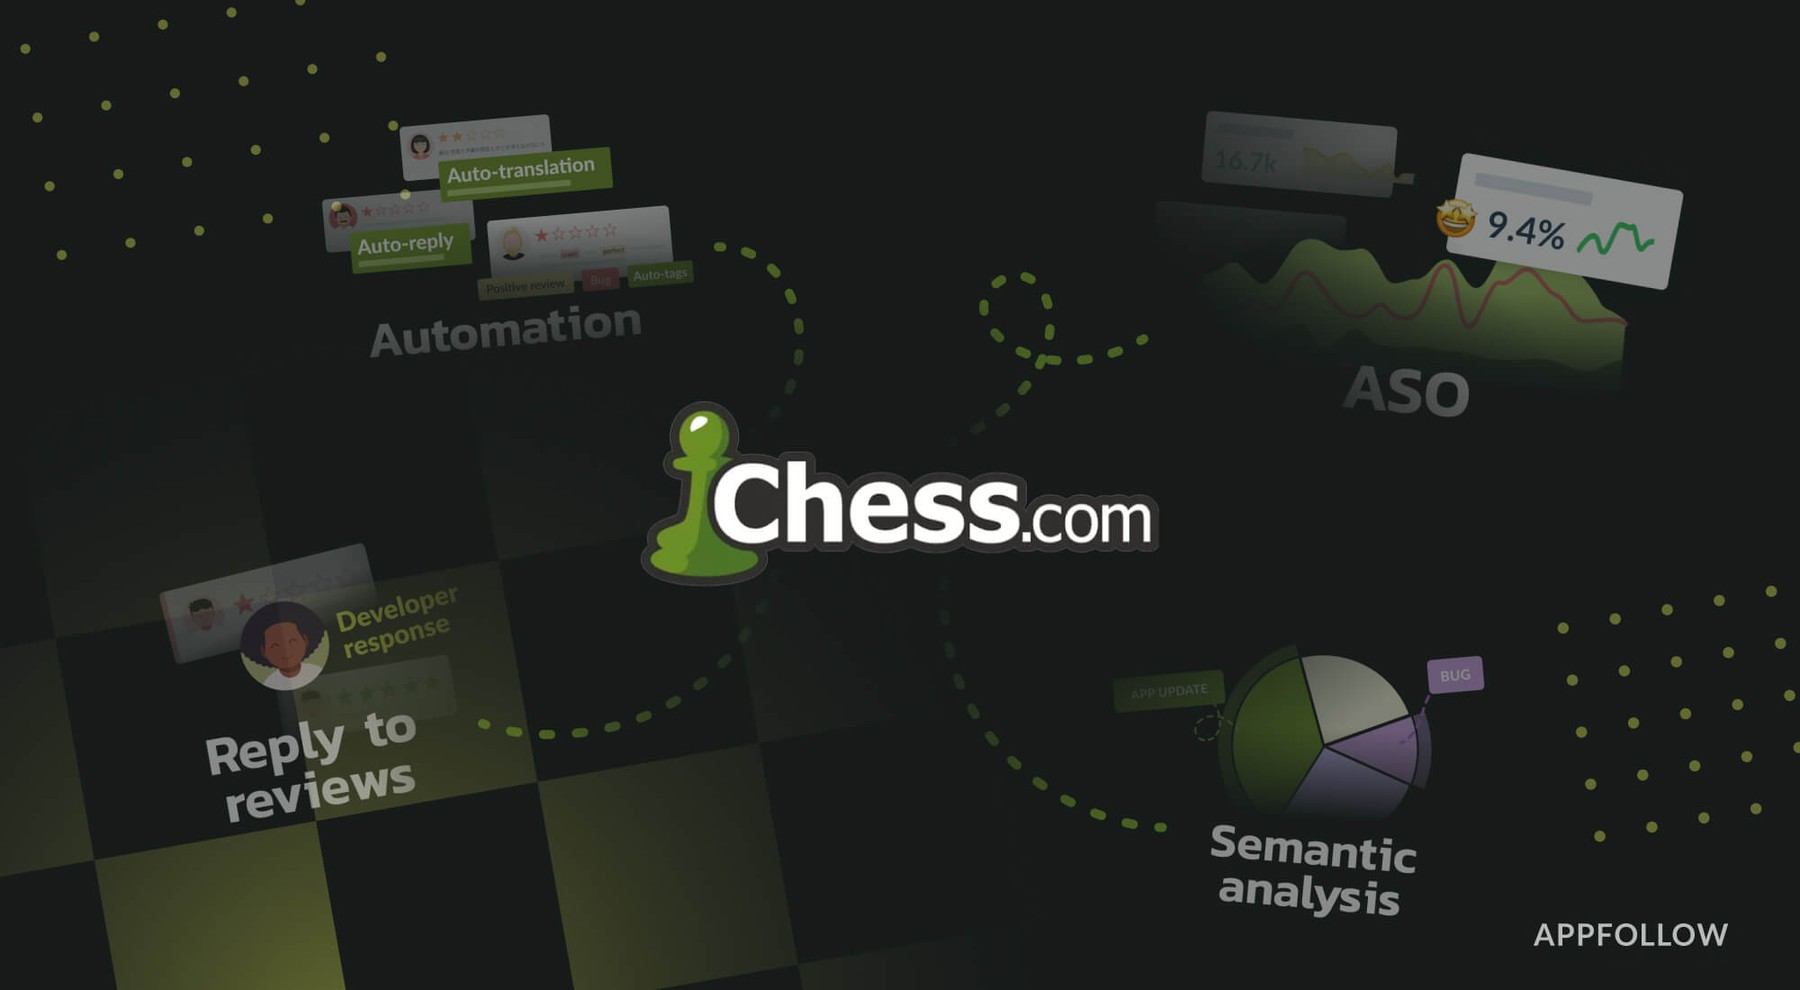 Chess.com leverages Semantics and automation with AppFollow to keep users happy